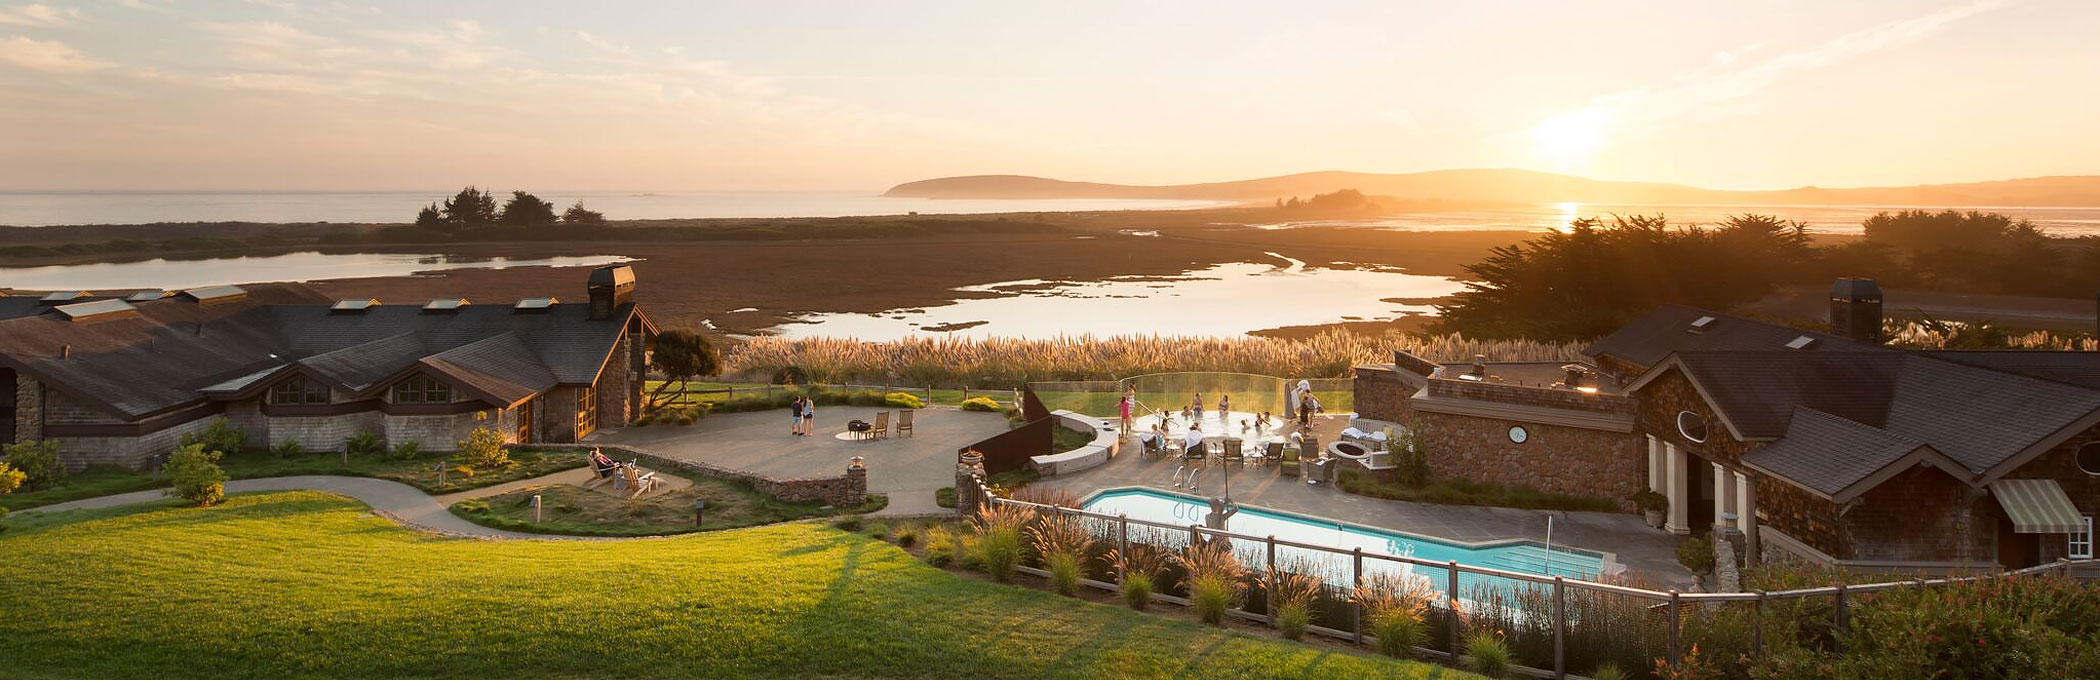 Bodega Bay Hotel Rooms